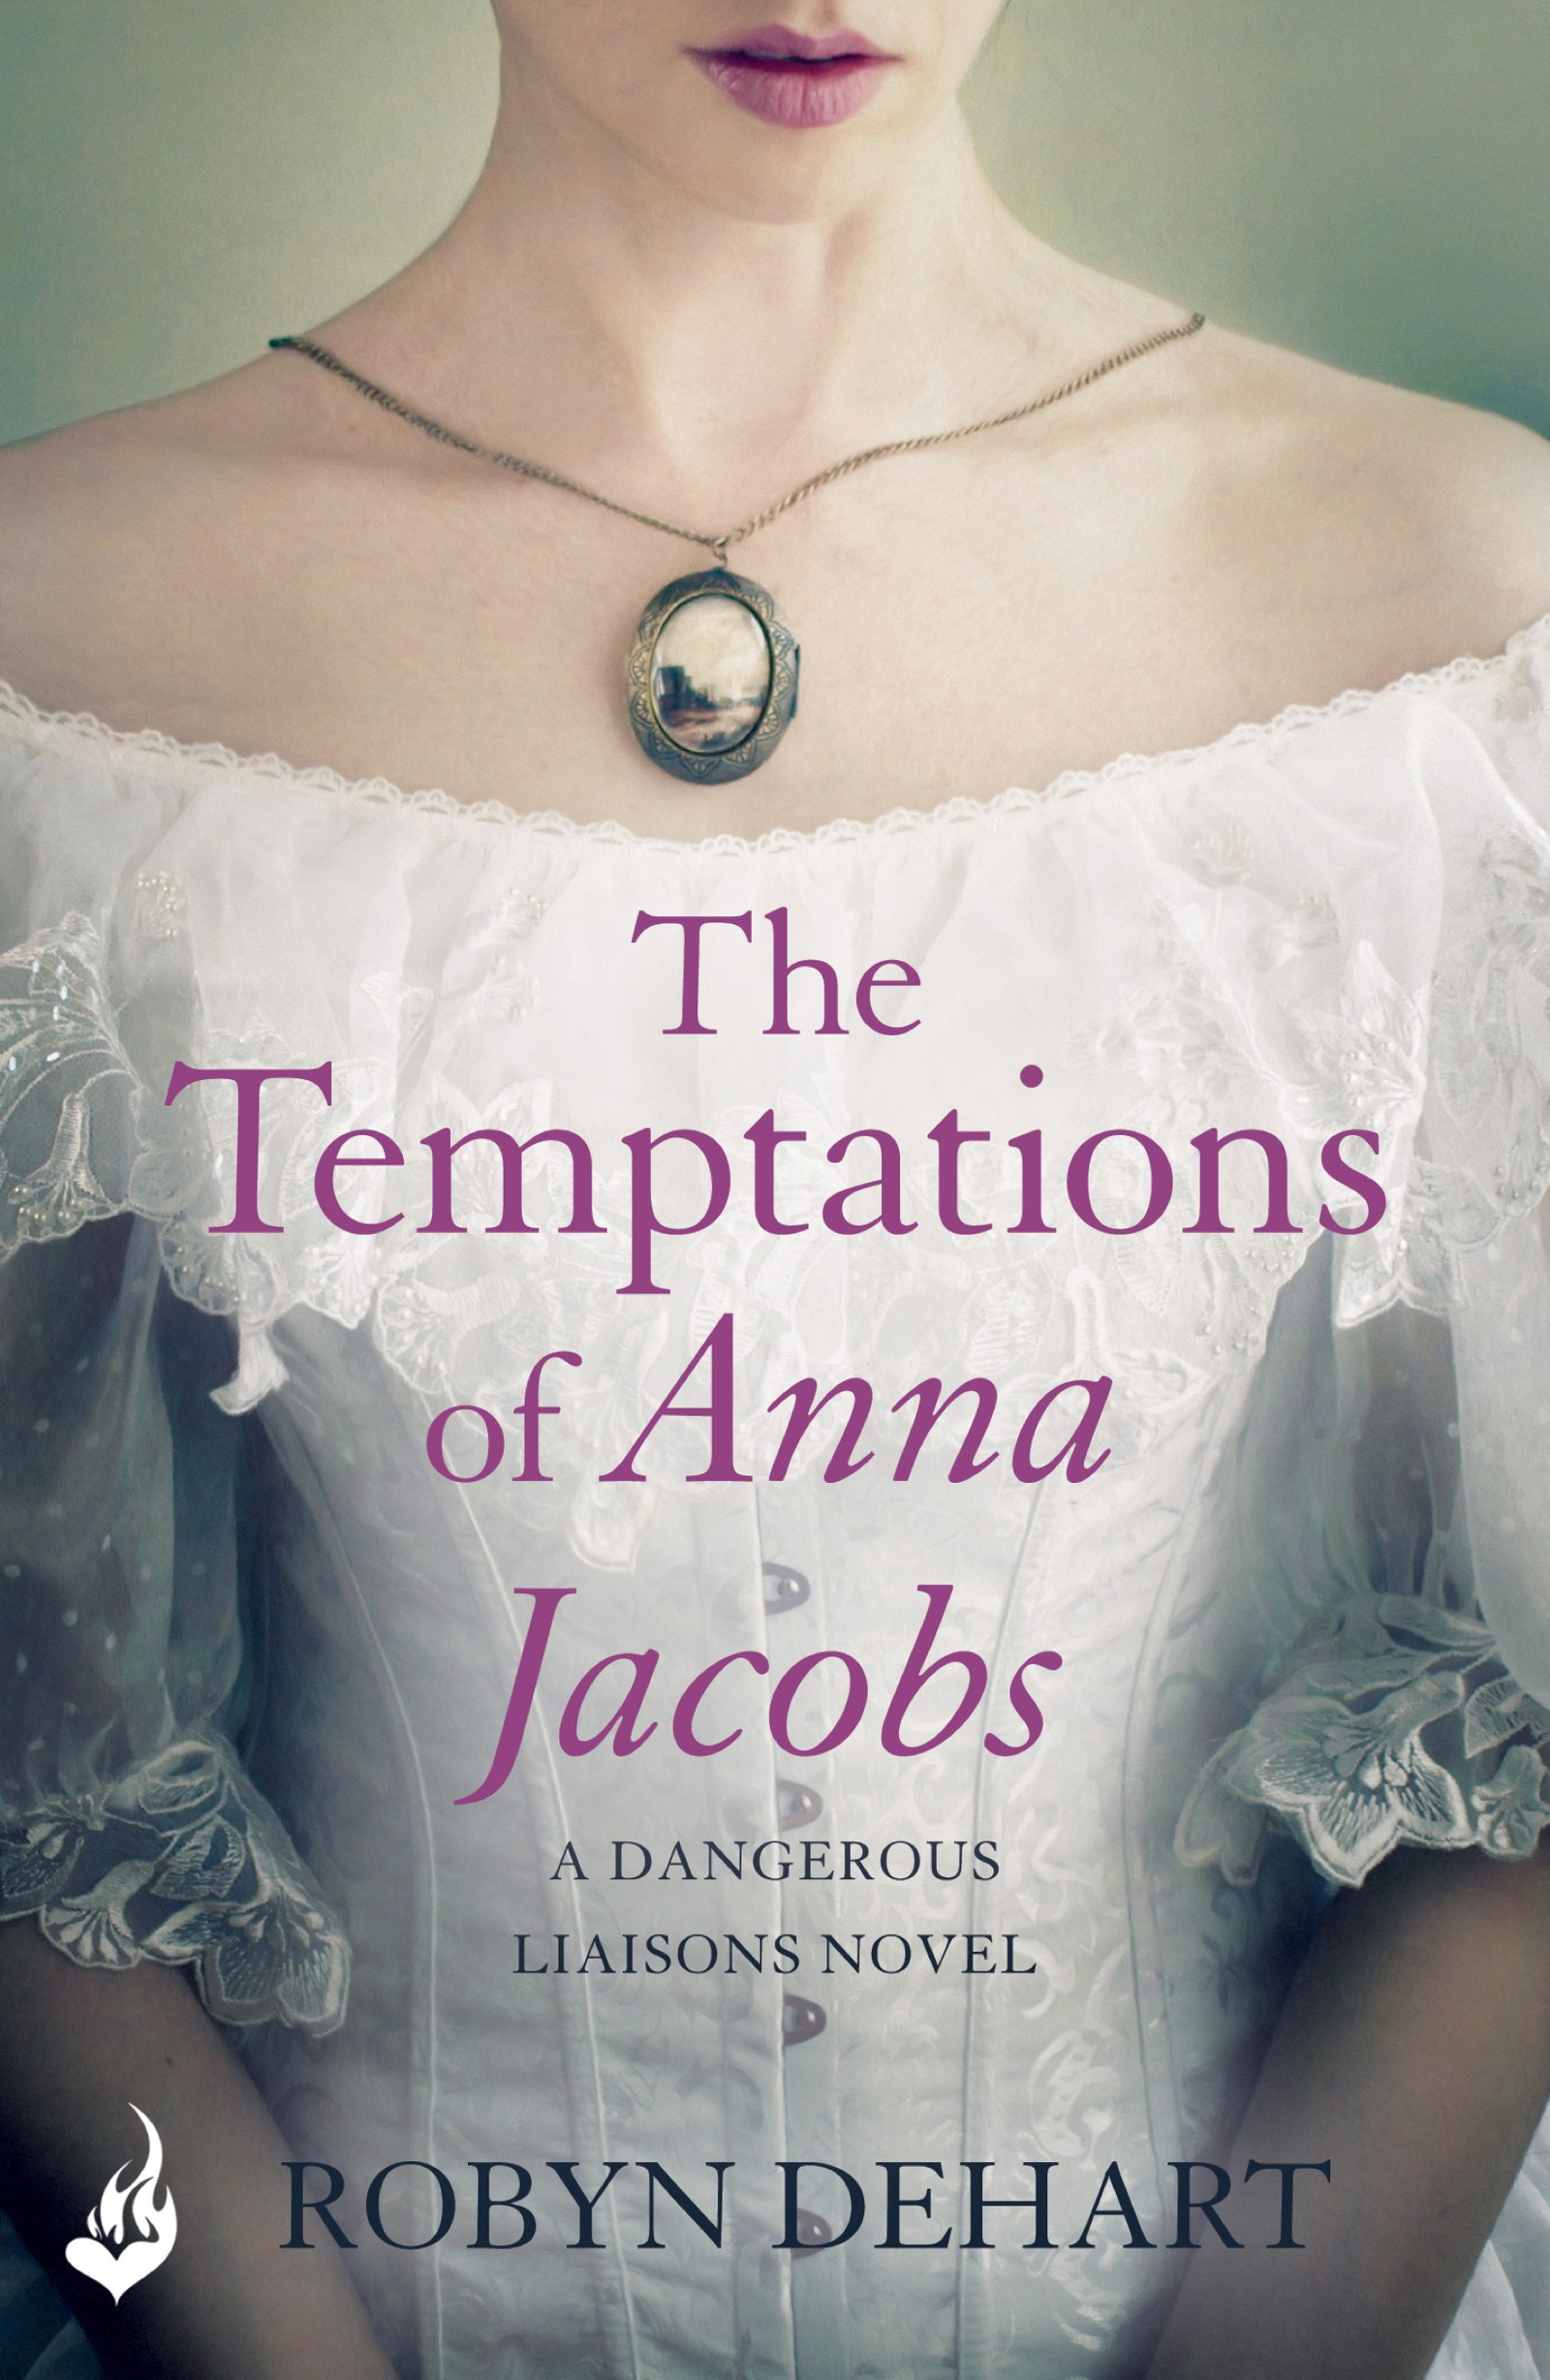 The Temptations of Anna Jacobs: Dangerous Liaisons Book 2 (A thrilling Victorian mystery romance)